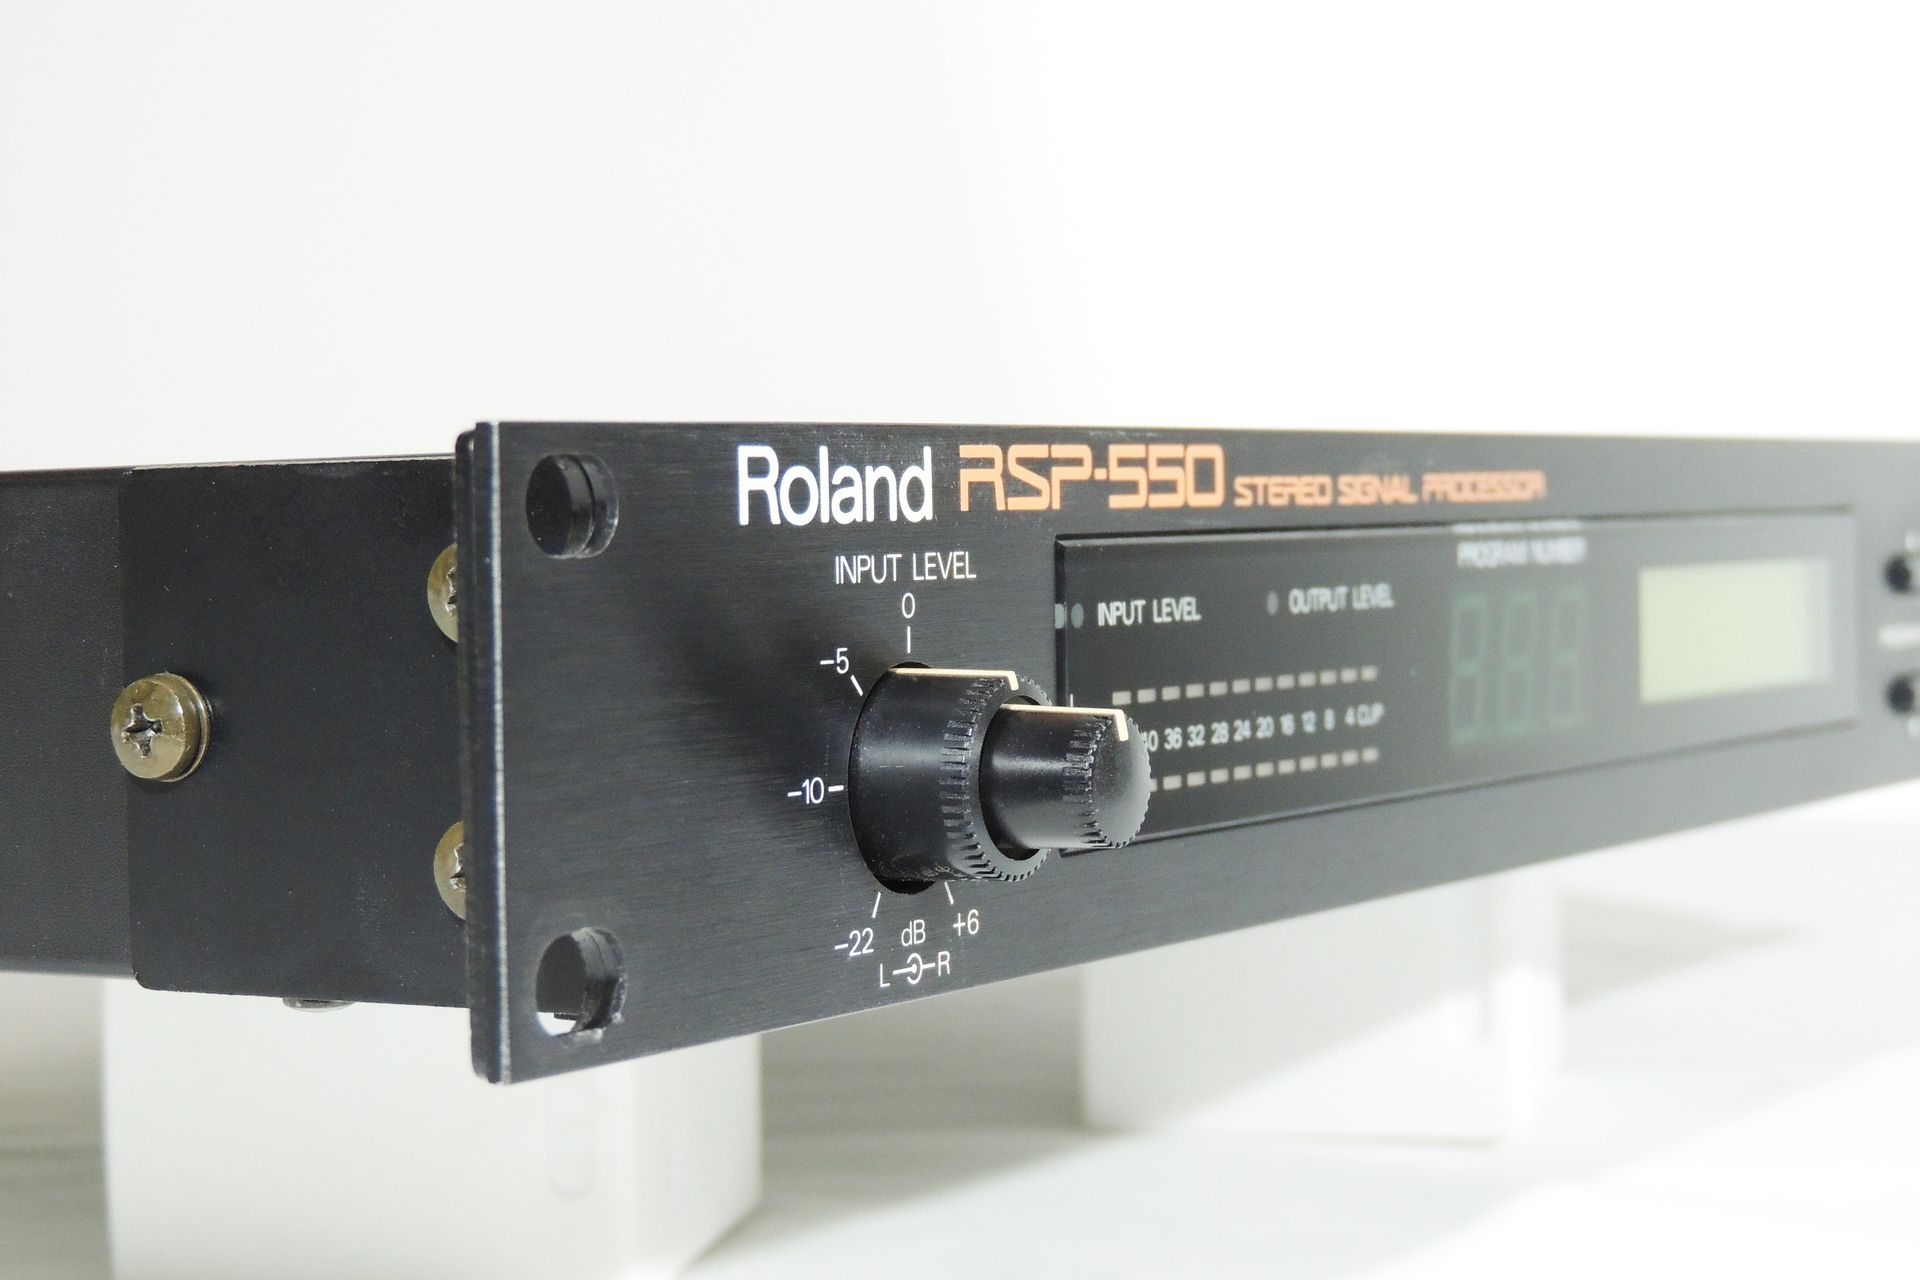 Roland RSP-550 digital mulit-effects processor for sale at Plasma Music